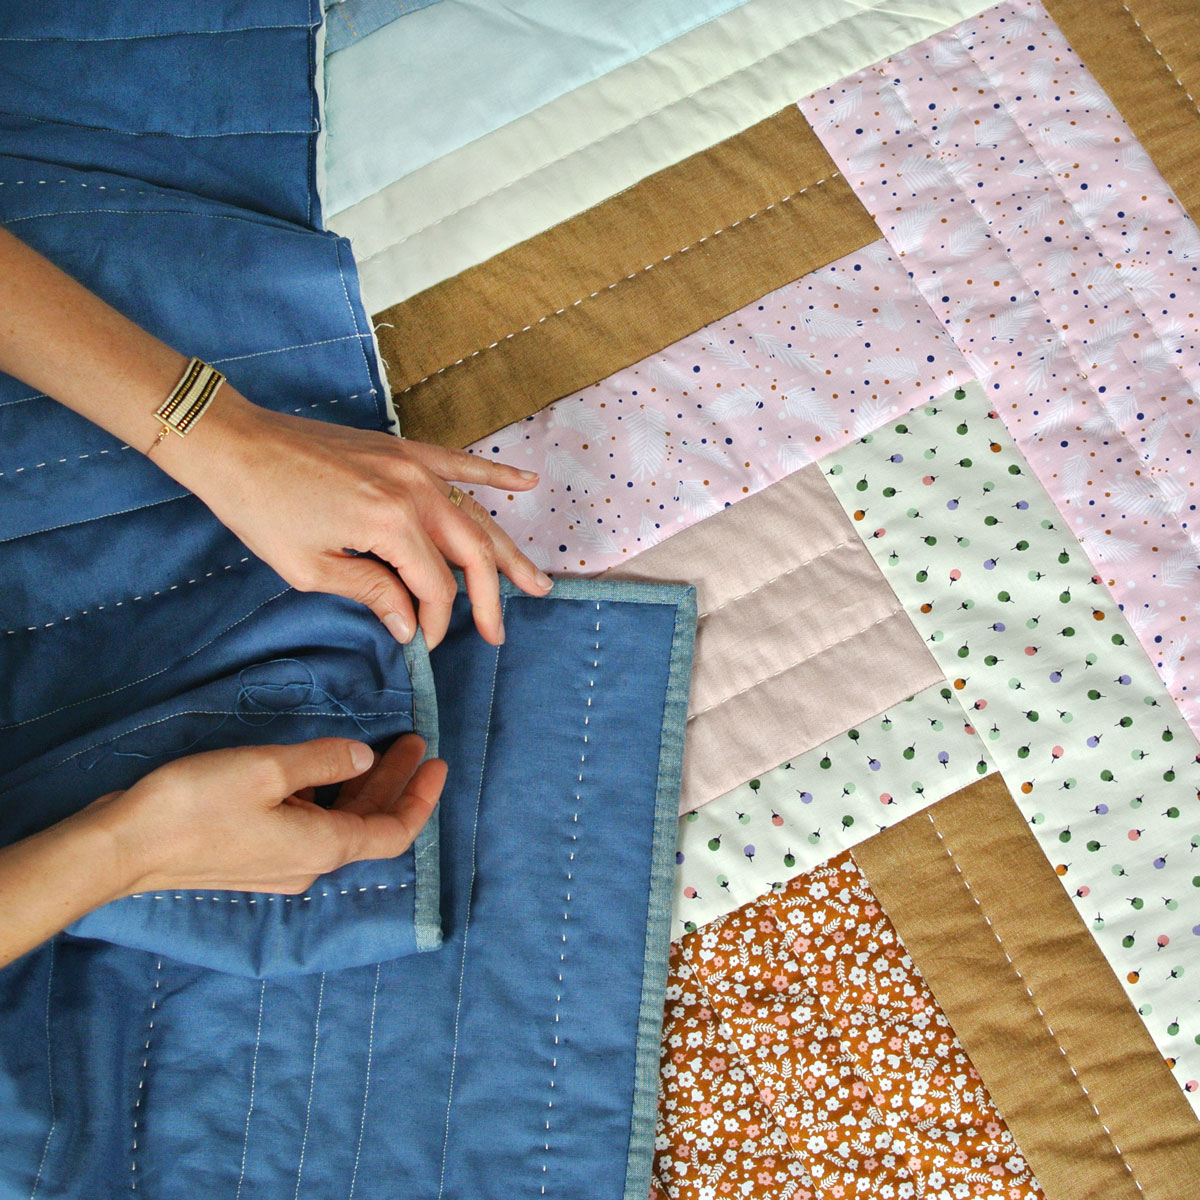 Weekend Candy Quilt Pattern (Download) - Suzy Quilts : quilt in a weekend - Adamdwight.com